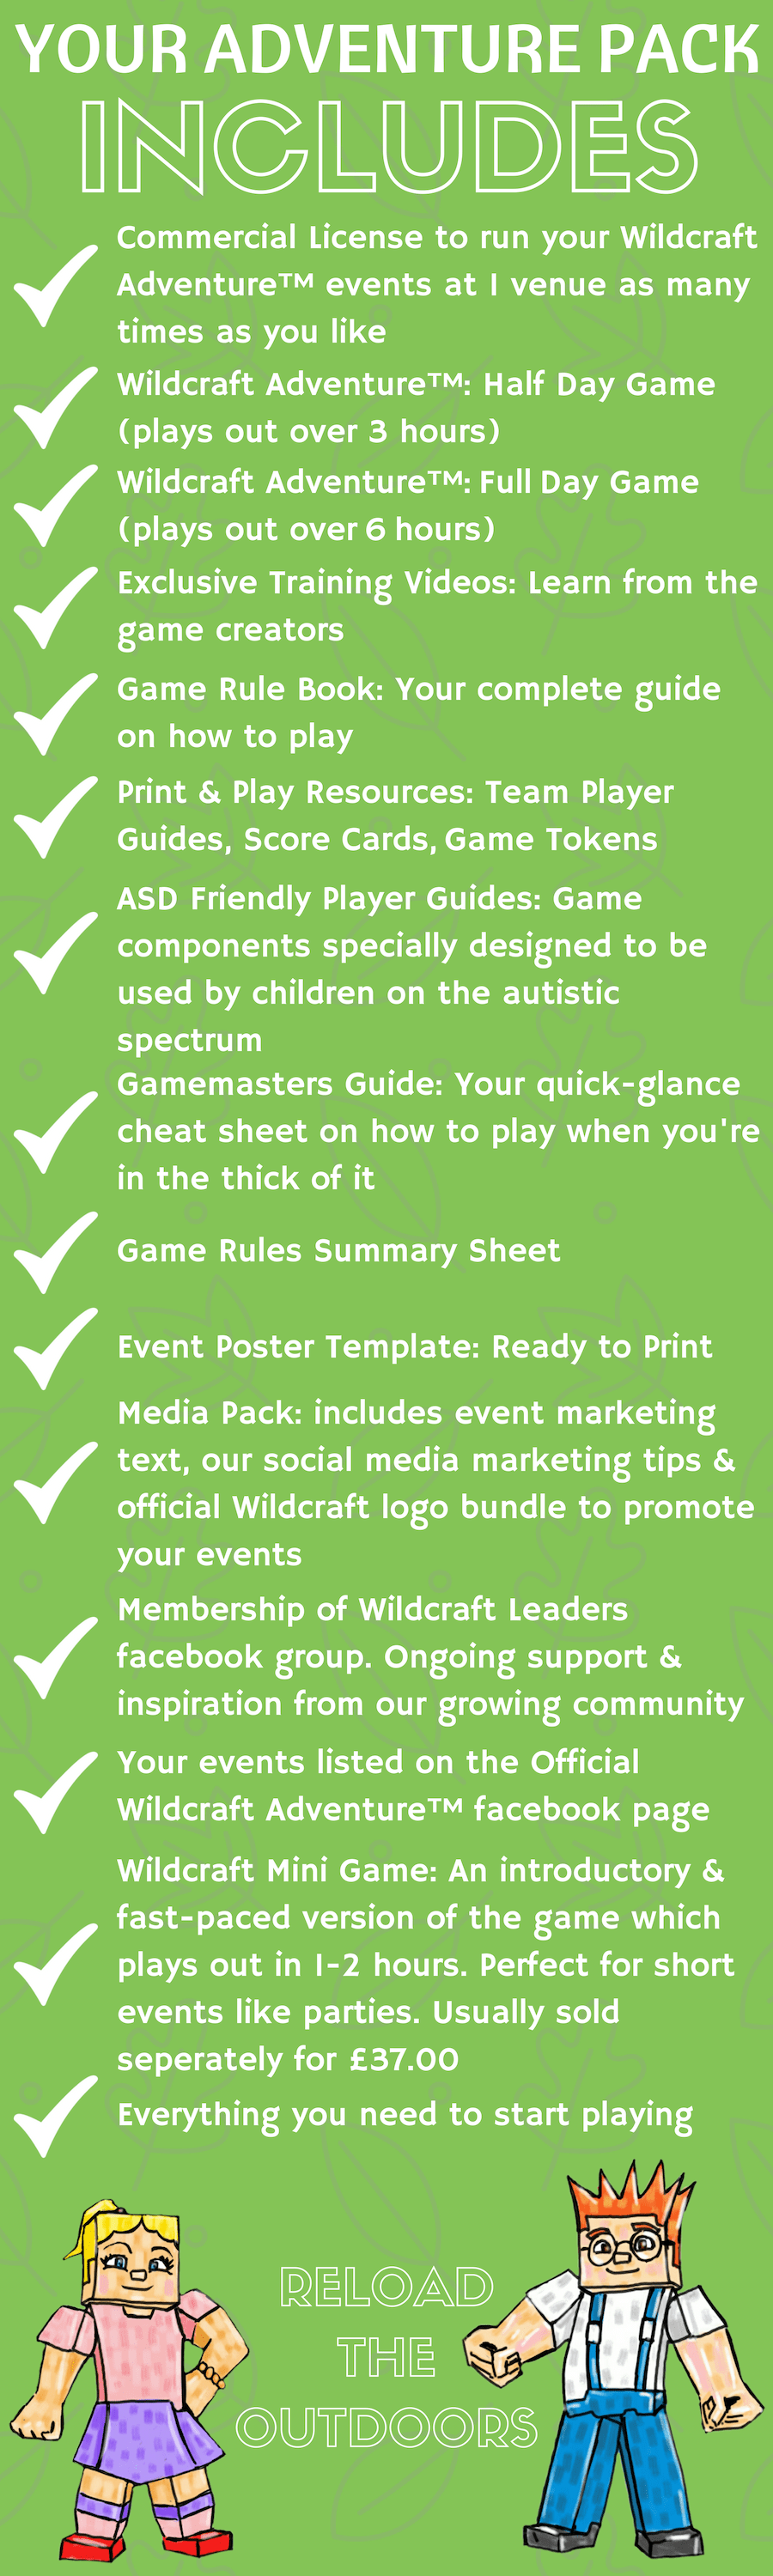 Wildcraft Adventure Pack: Level 1 - what you get